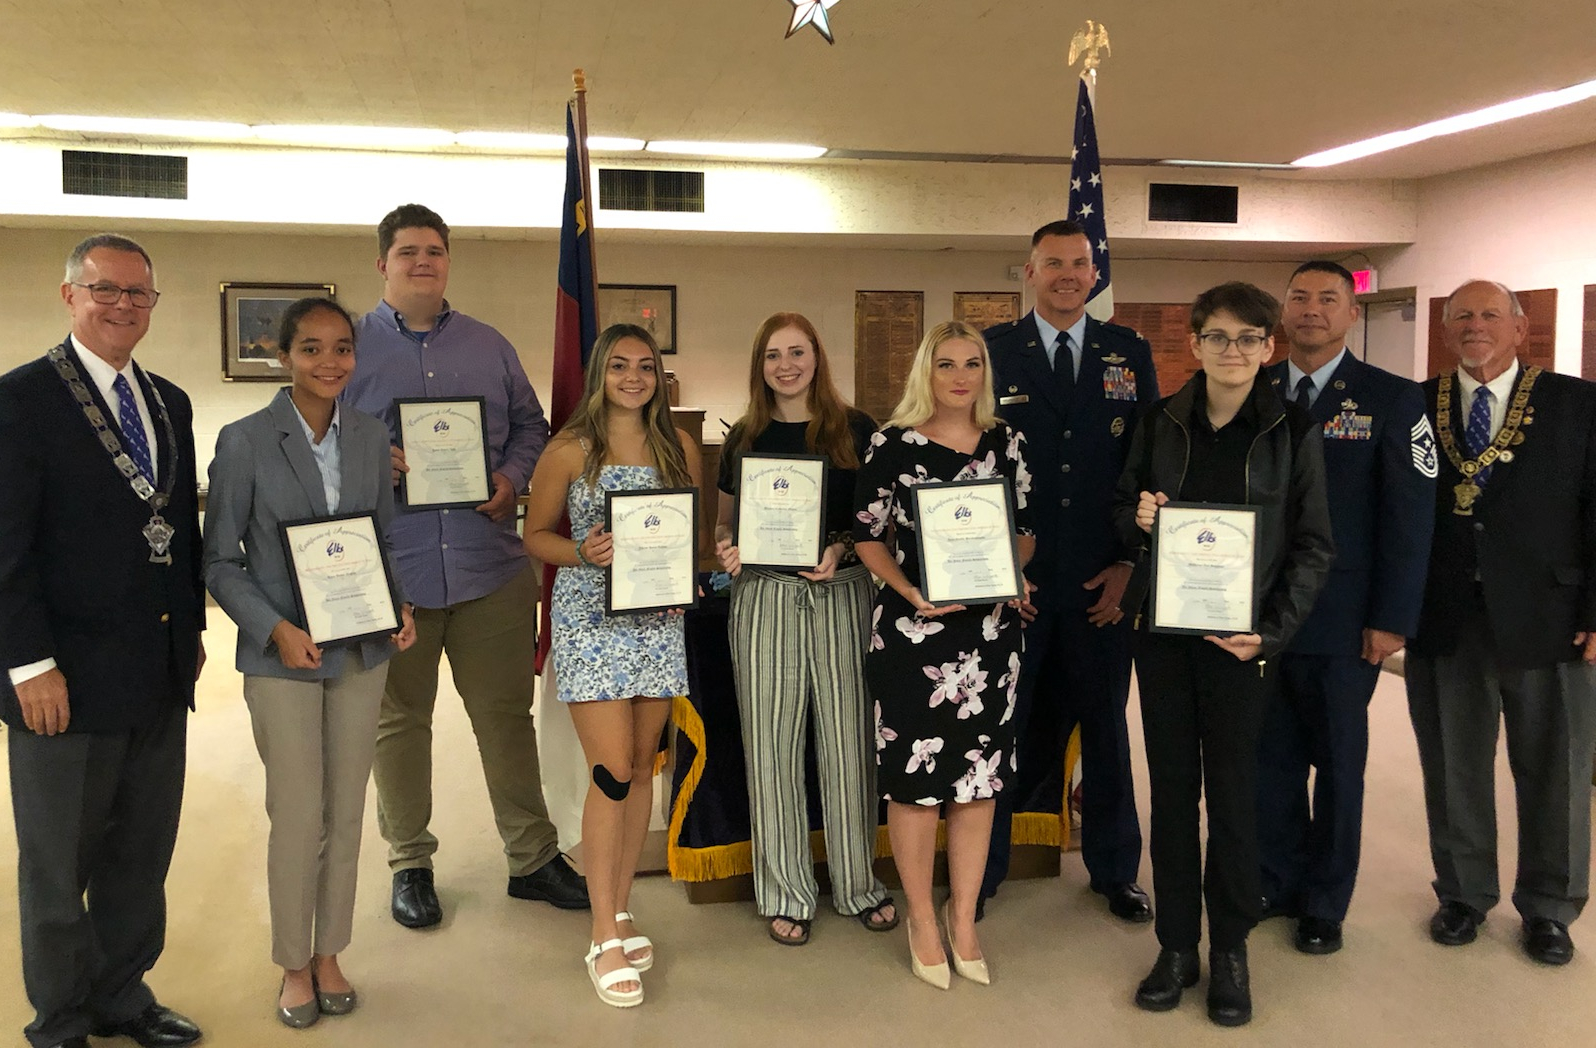 Air Force Family Scholarships Presented At Goldsboro Elks Lodge (PHOTOS)